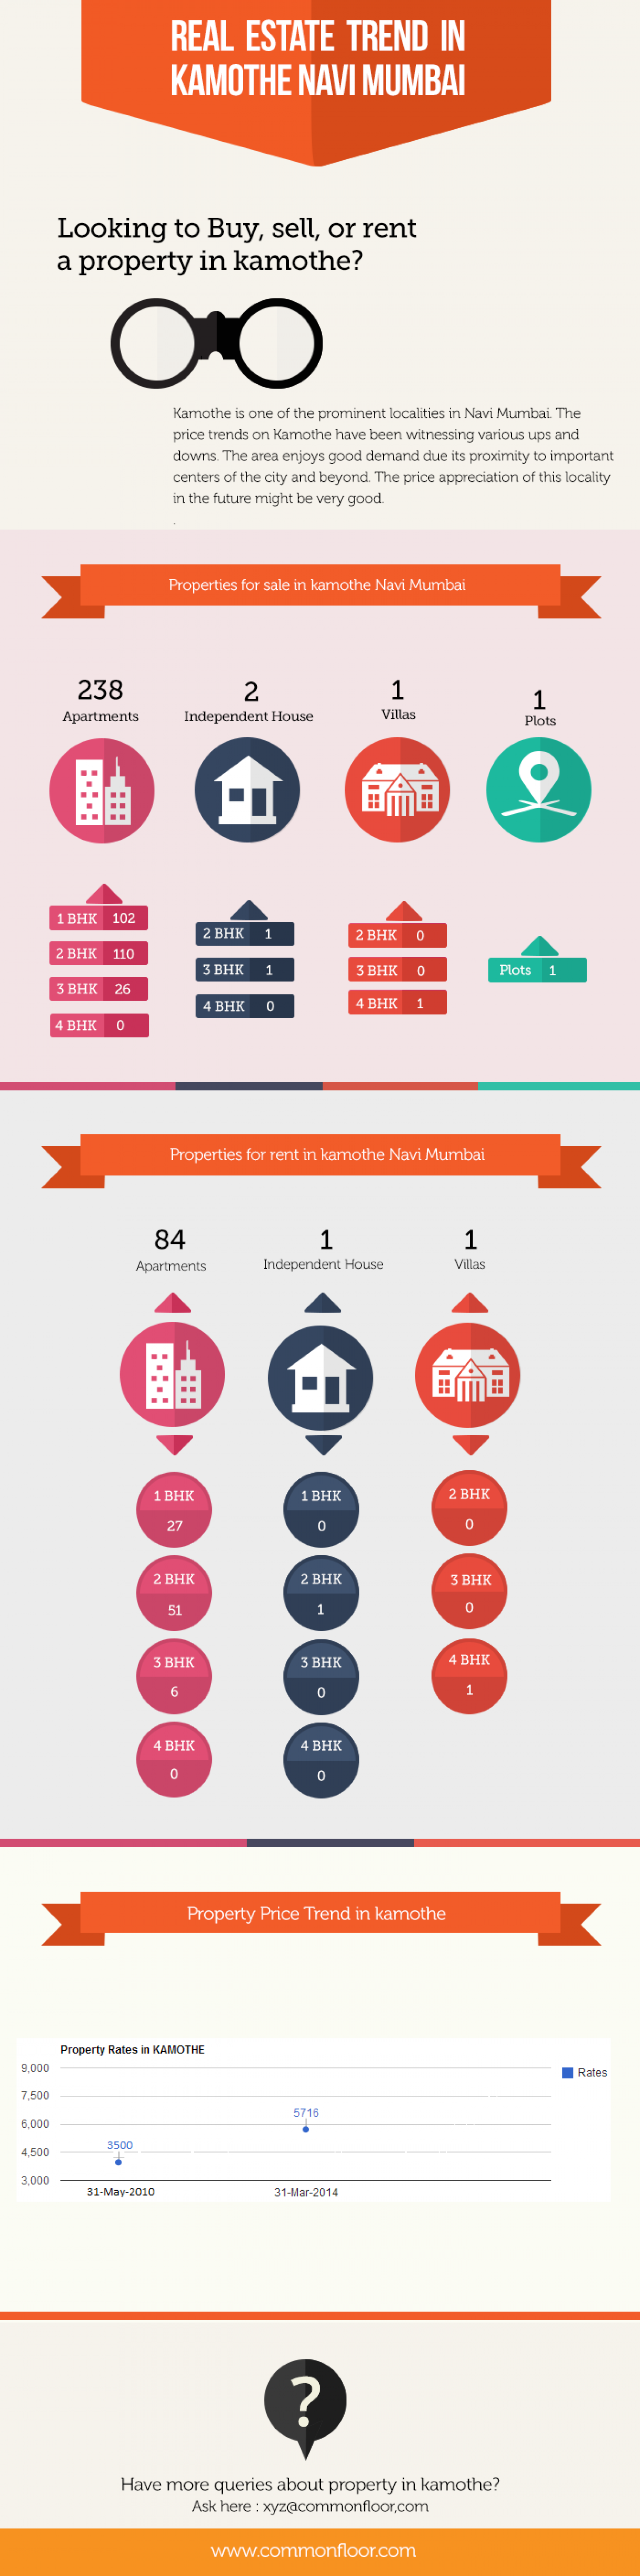 Real Estate Trend in Kamothe Navi Mumbai Infographic